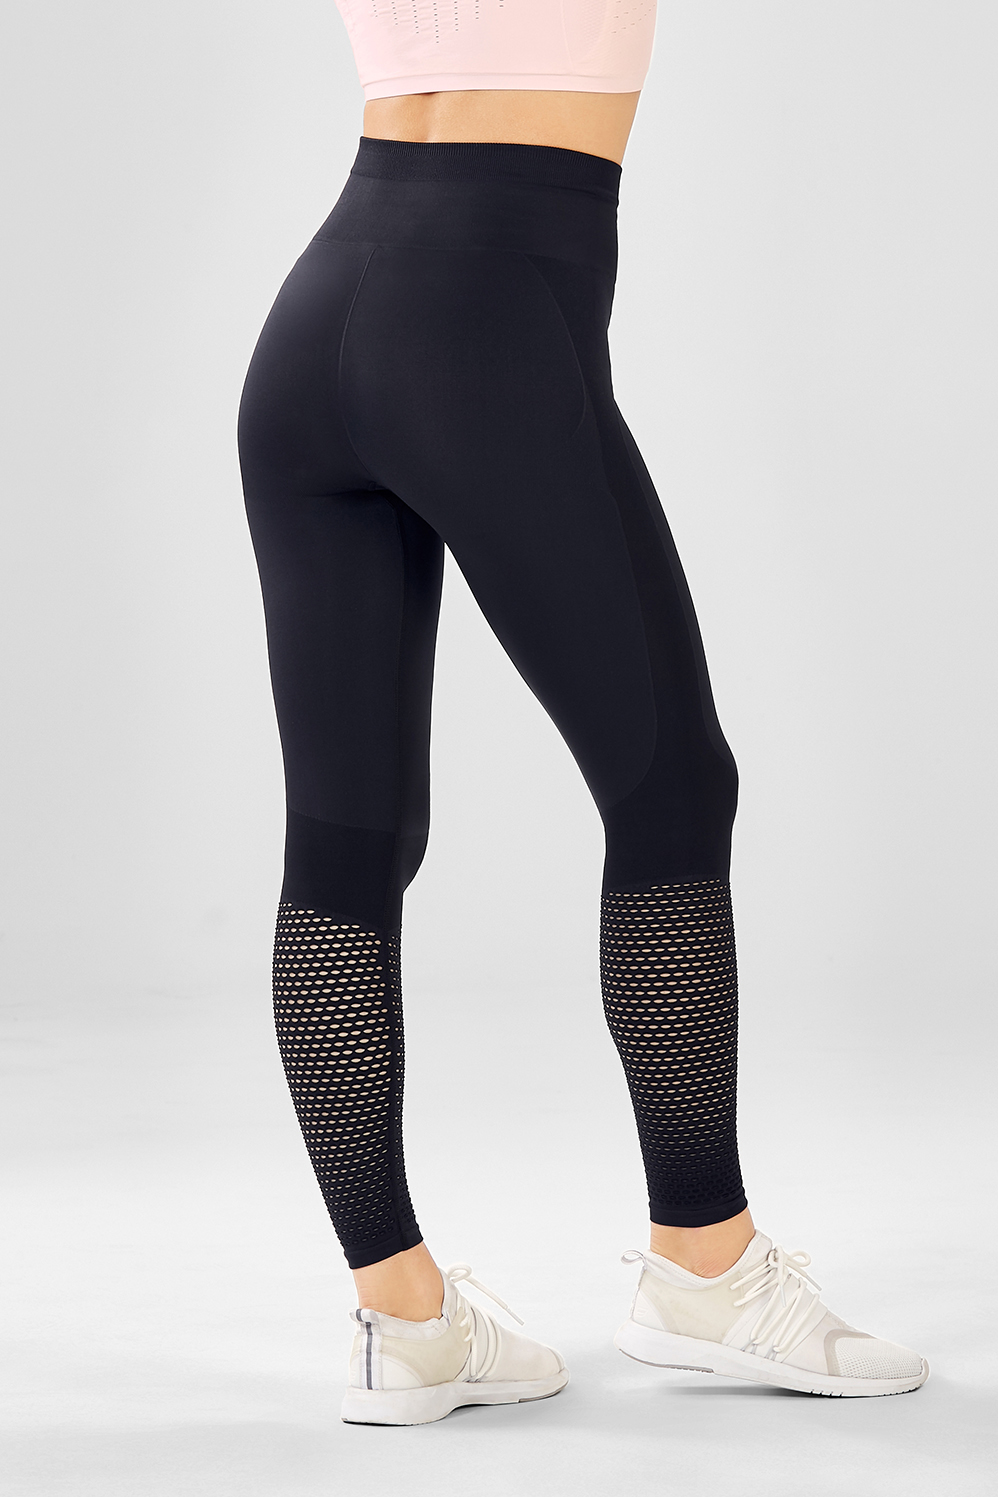 4852ac8a89e952 Seamless High-Waisted Mesh Legging - Fabletics